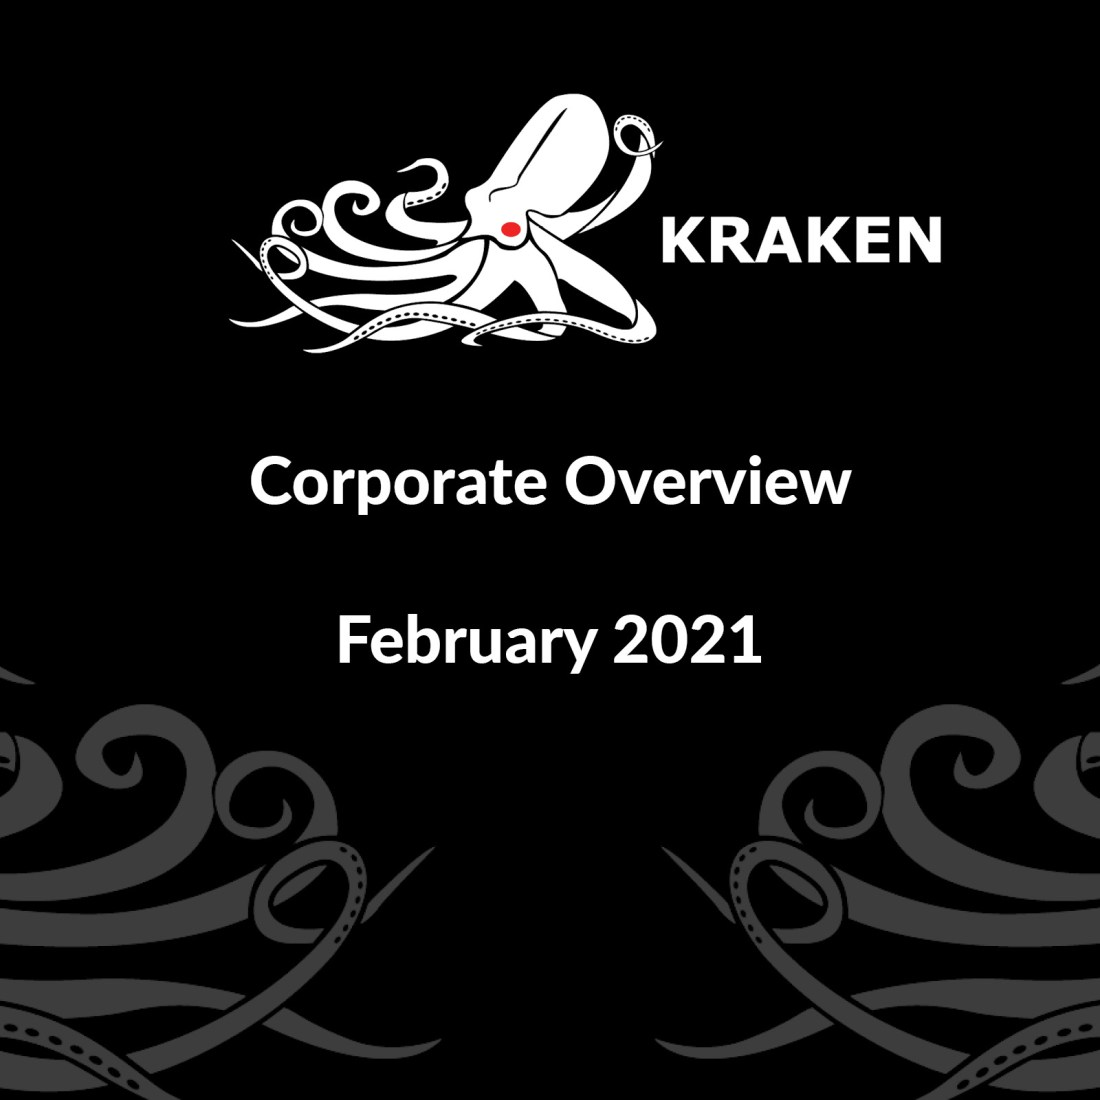 Corporate Overview - May 2020